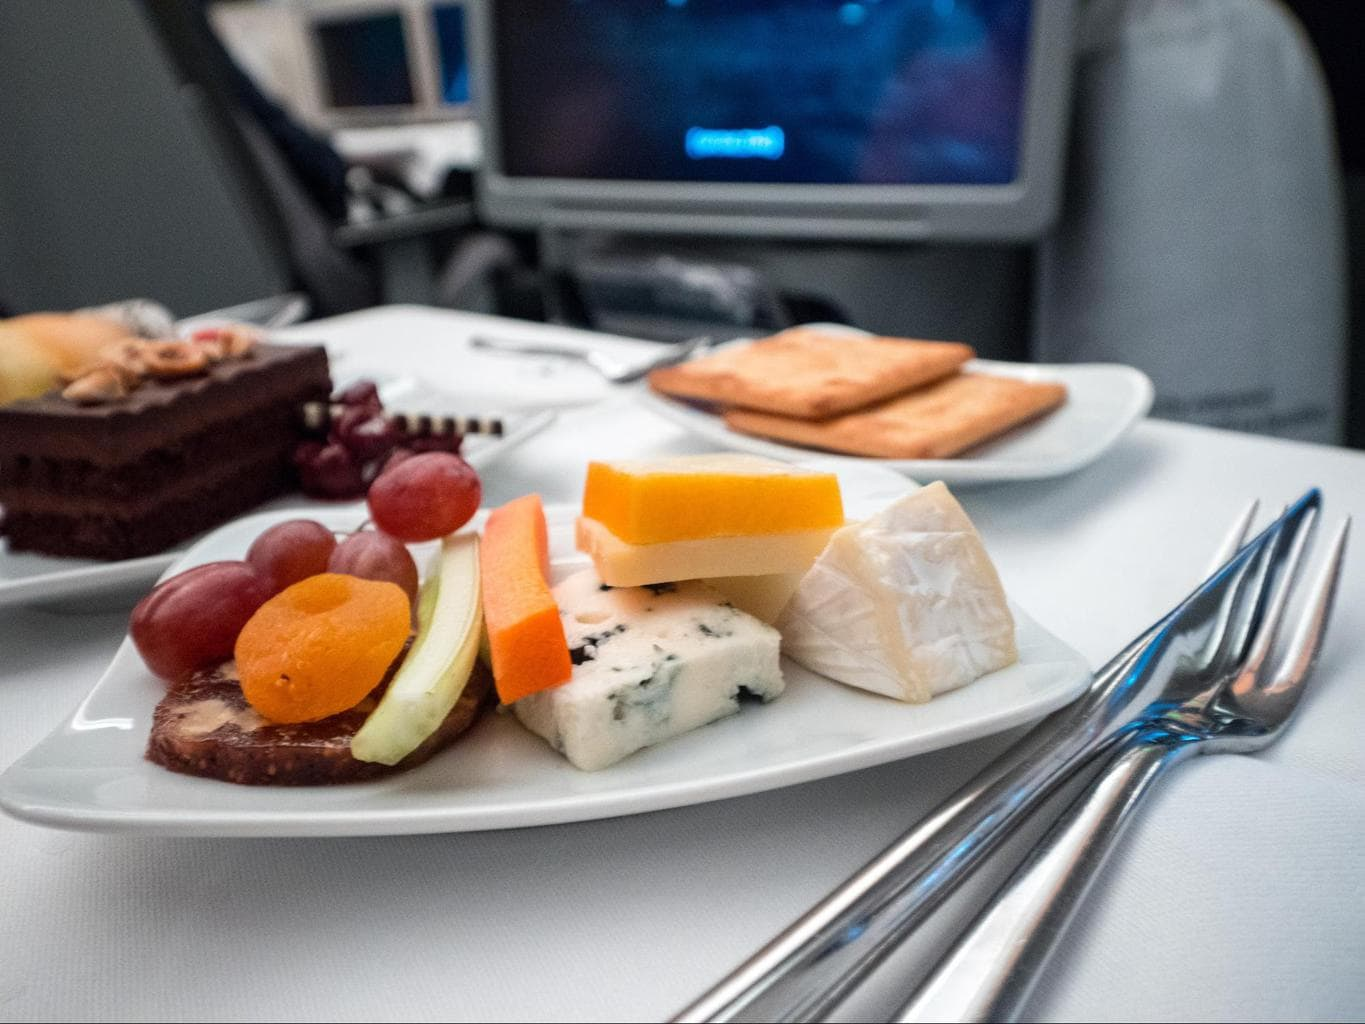 Lufthansa Business Class food - Cheese platter